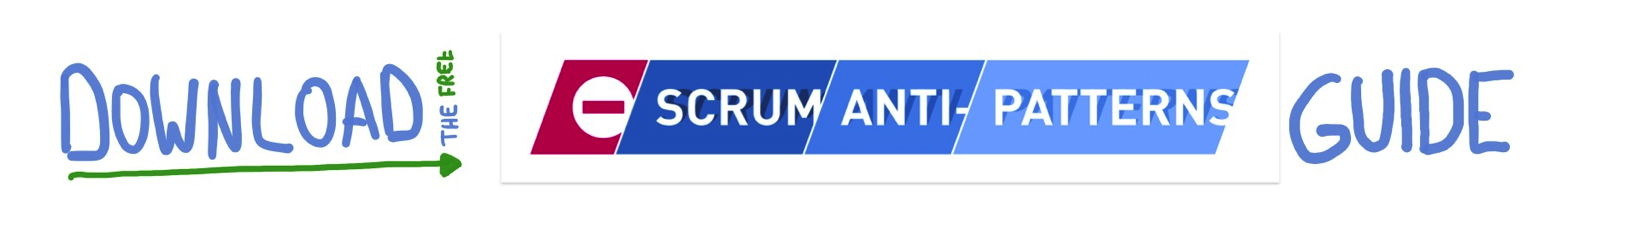 Download the 'Scrum Anti-Patterns Guide' for Free